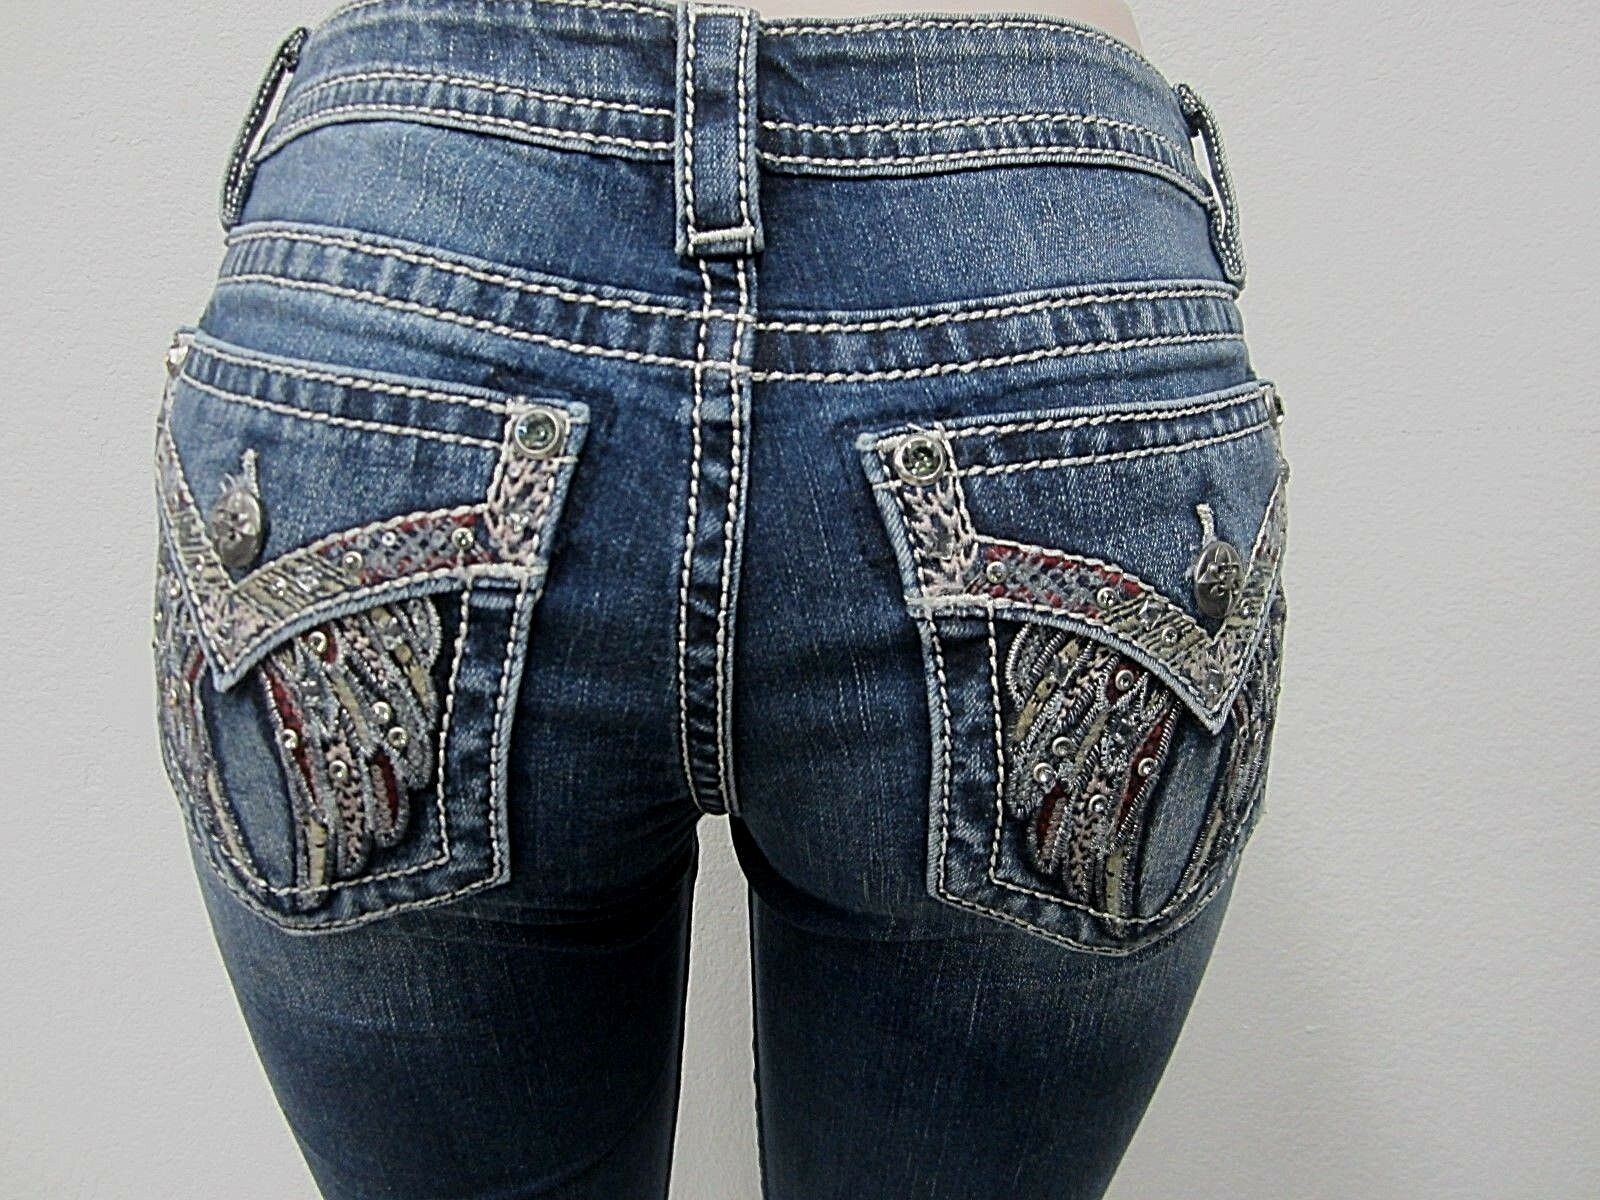 NWT CUTE Miss Me Mid Rise Embellished Wings Skinny Denim M3040S Size 25 X 30